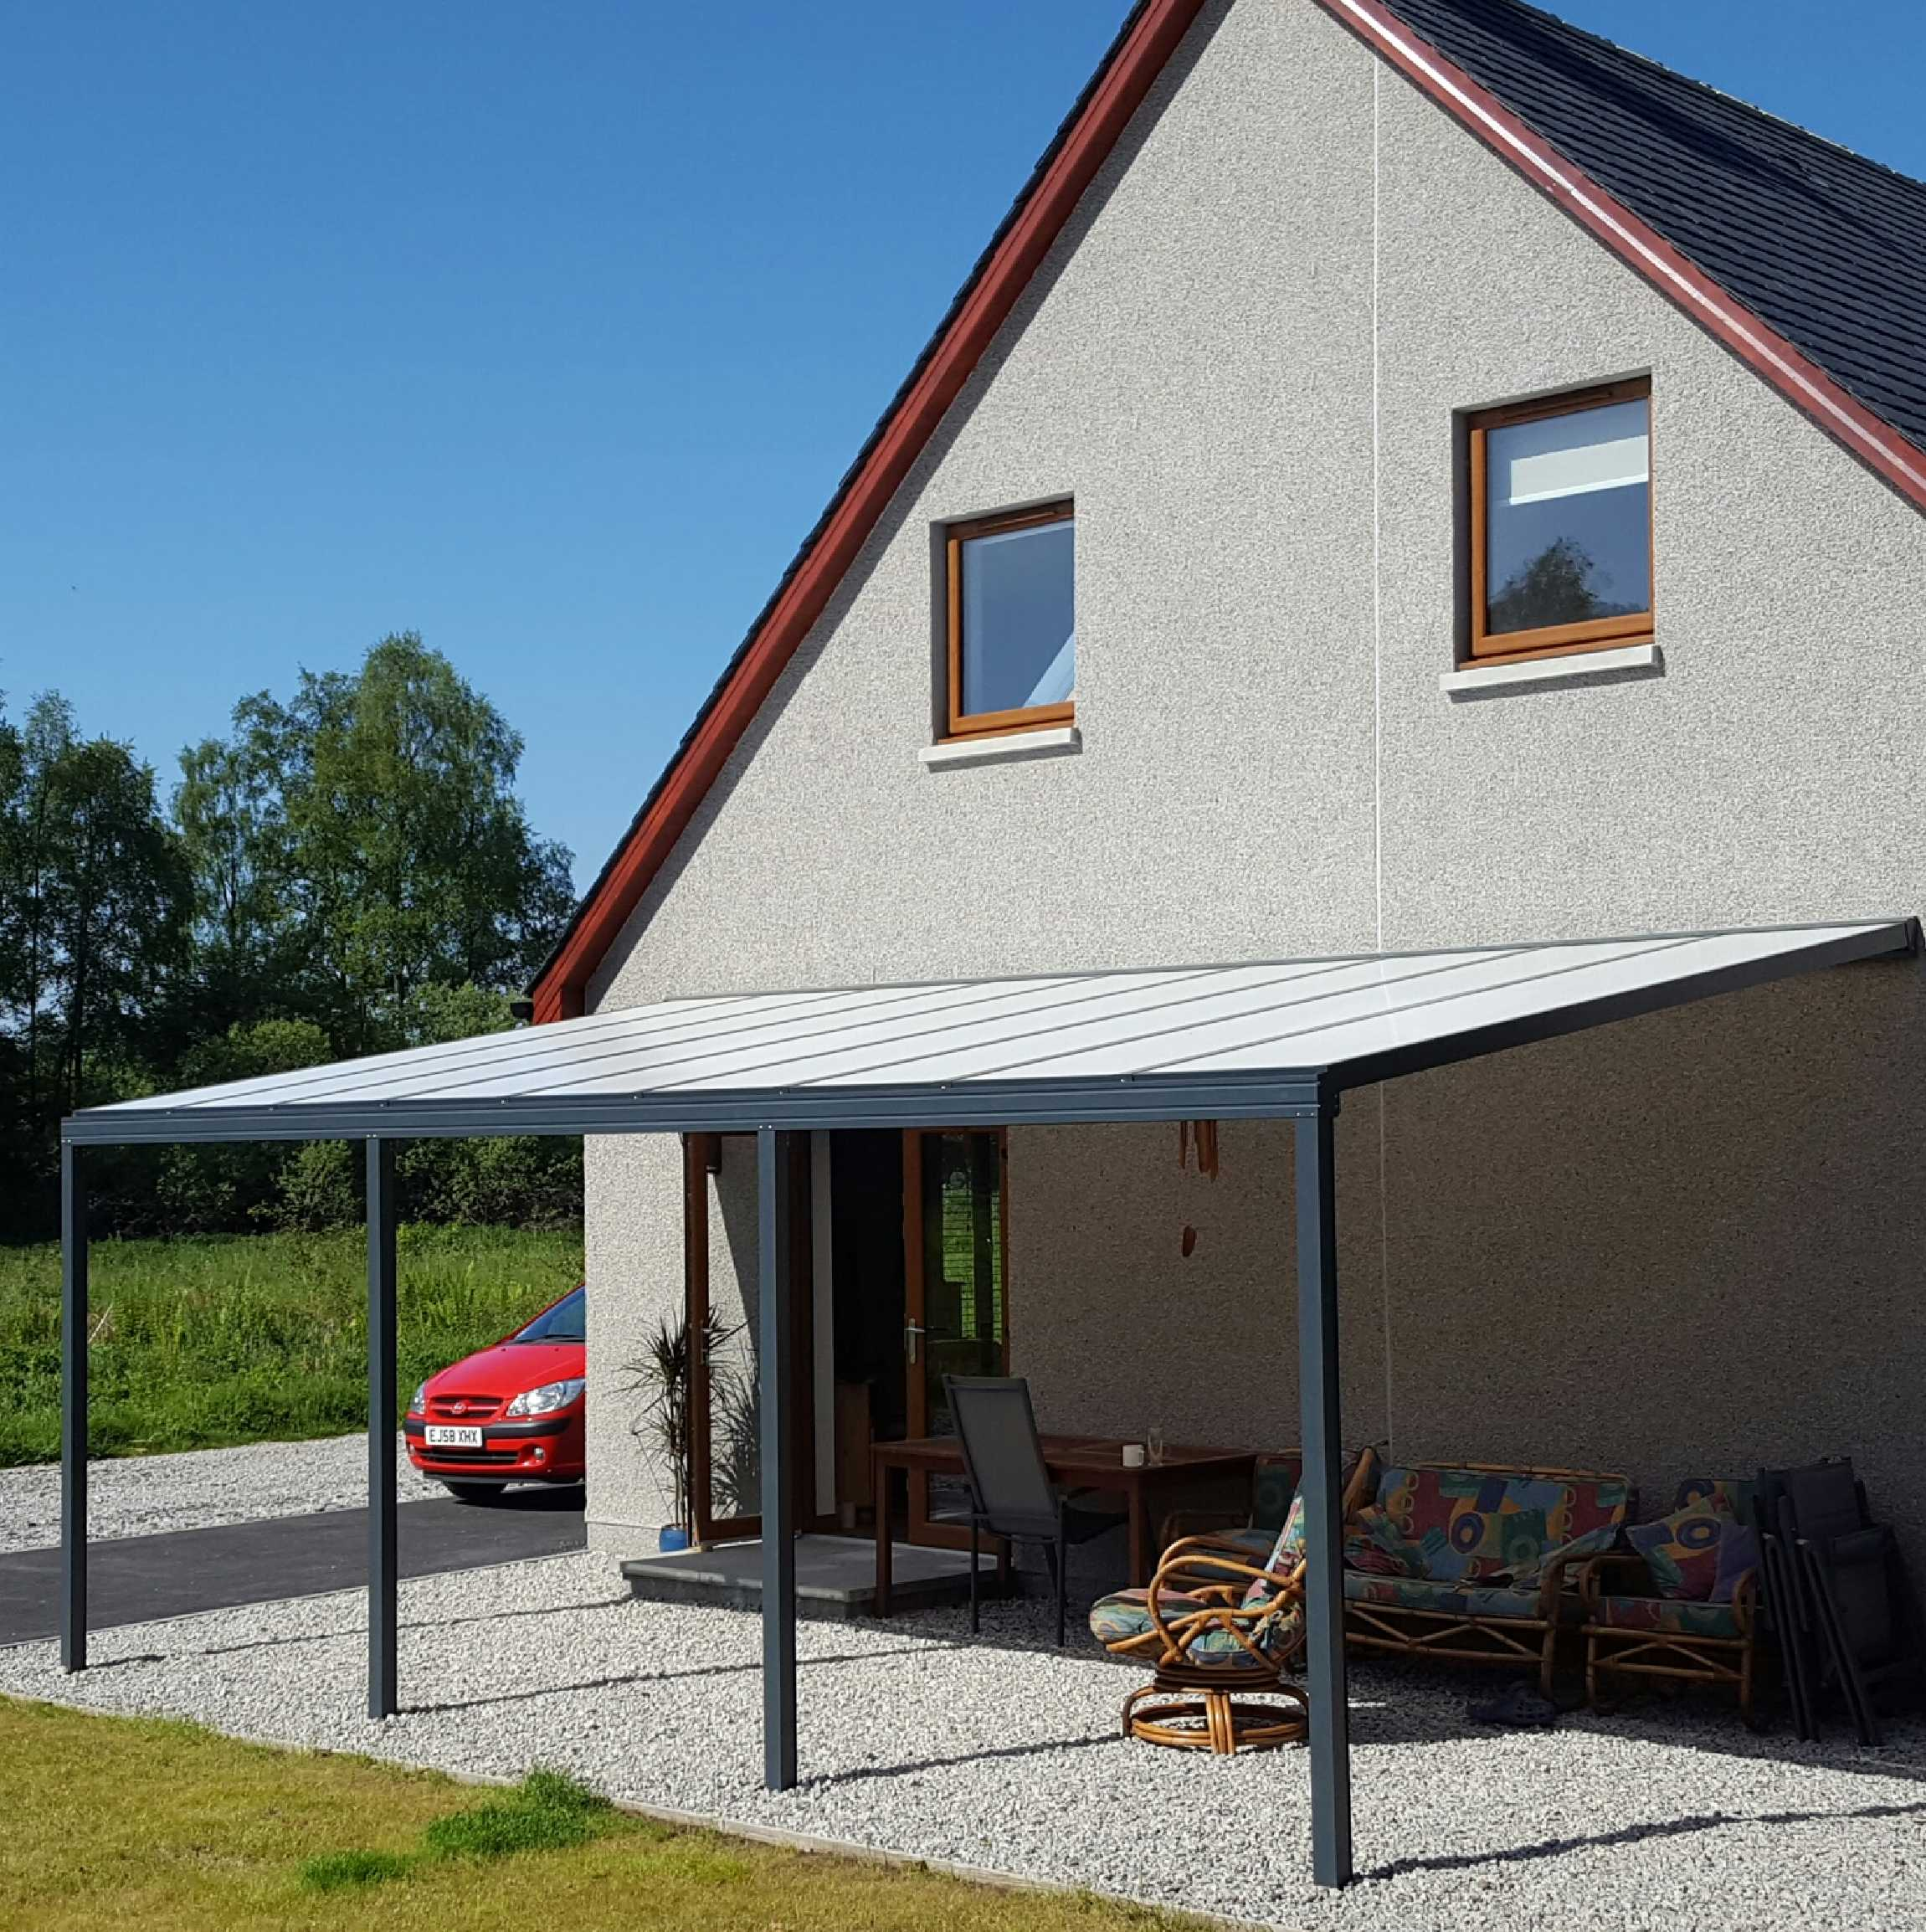 Great selection of Omega Smart Lean-To Canopy, Anthracite Grey, 16mm Polycarbonate Glazing - 4.9m (W) x 4.0m (P), (3) Supporting Posts